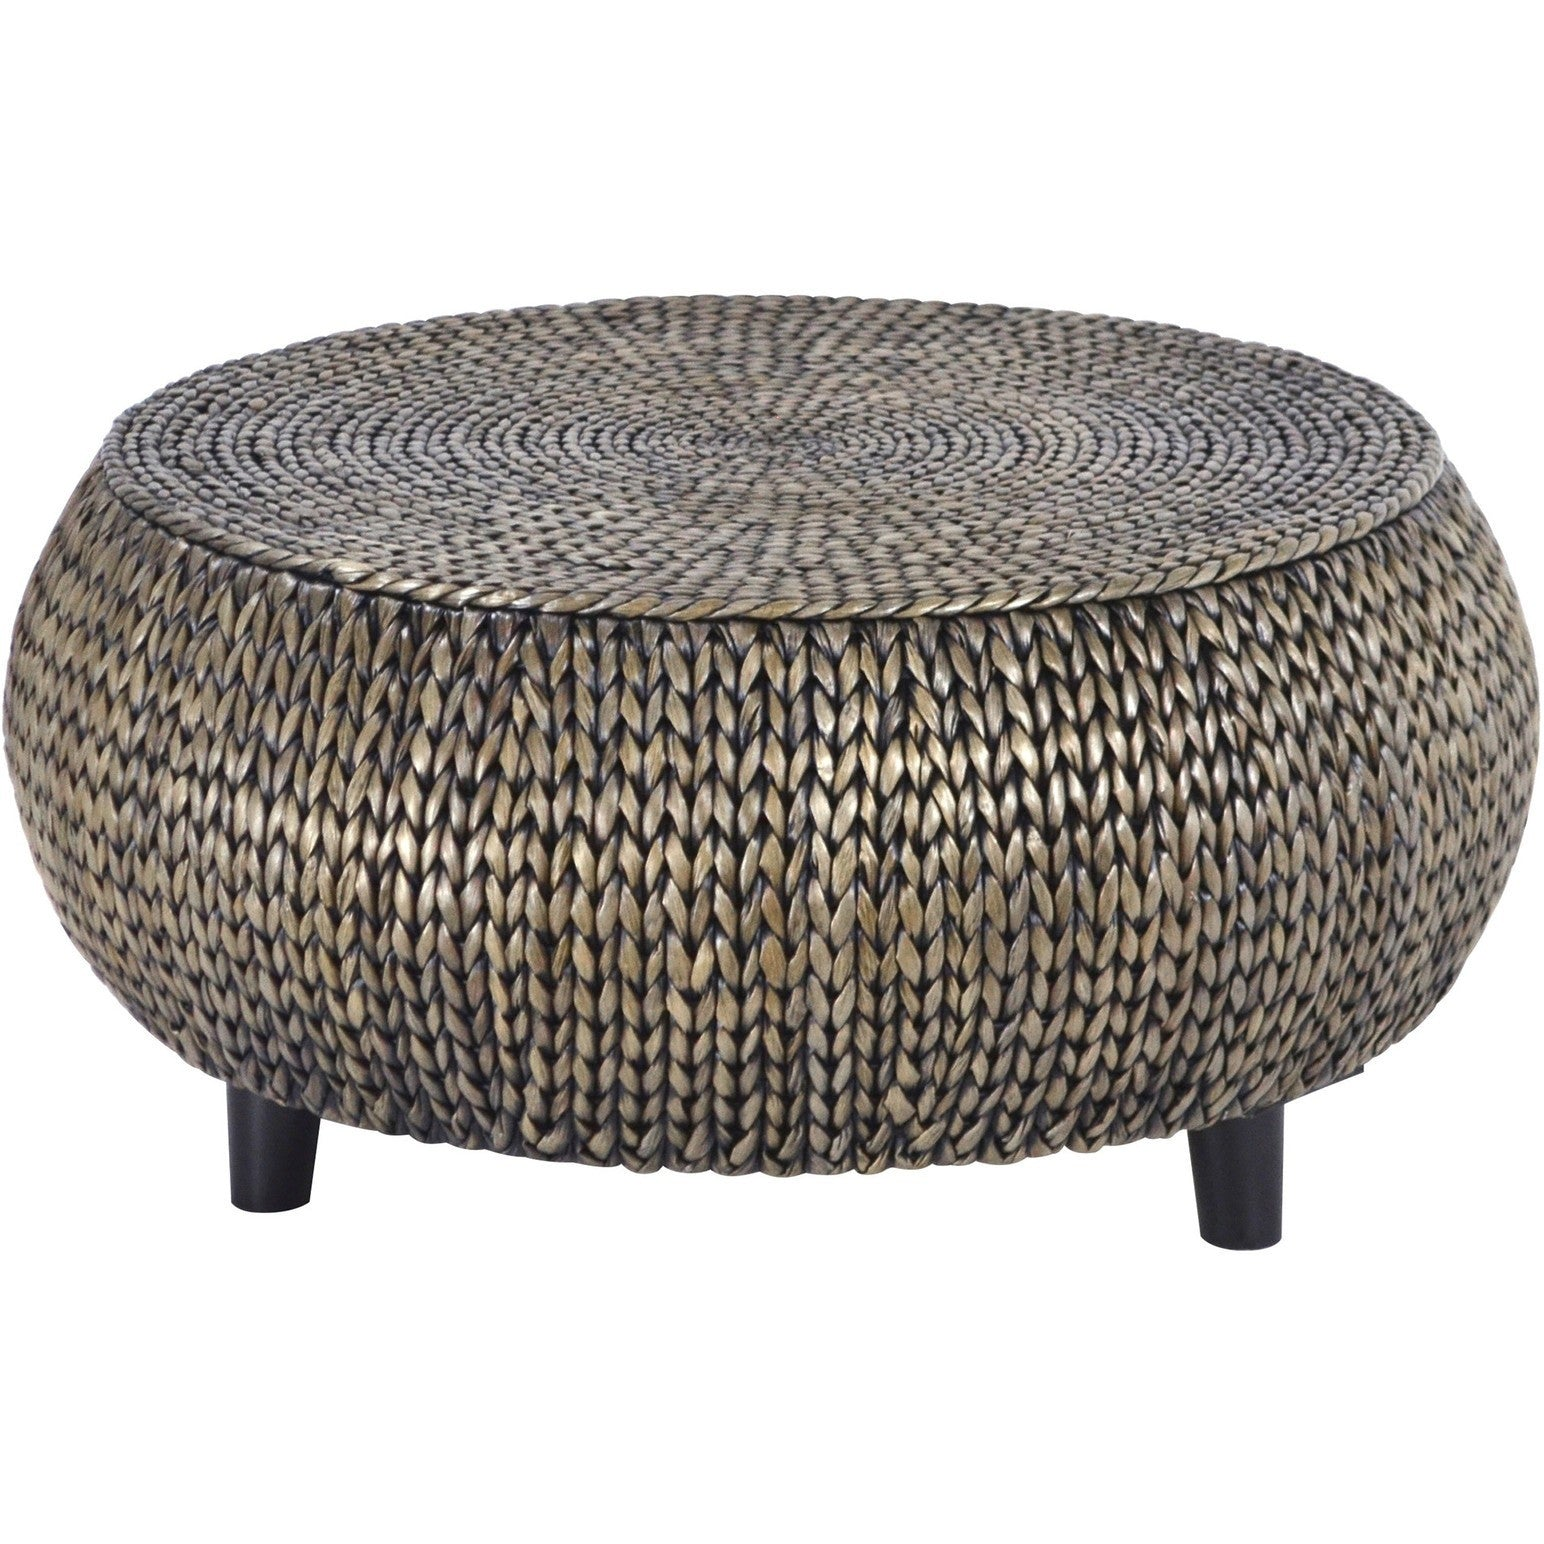 ... Bali Breeze Coffee Table By Gallerie Decor   CoffeetableDirect.com